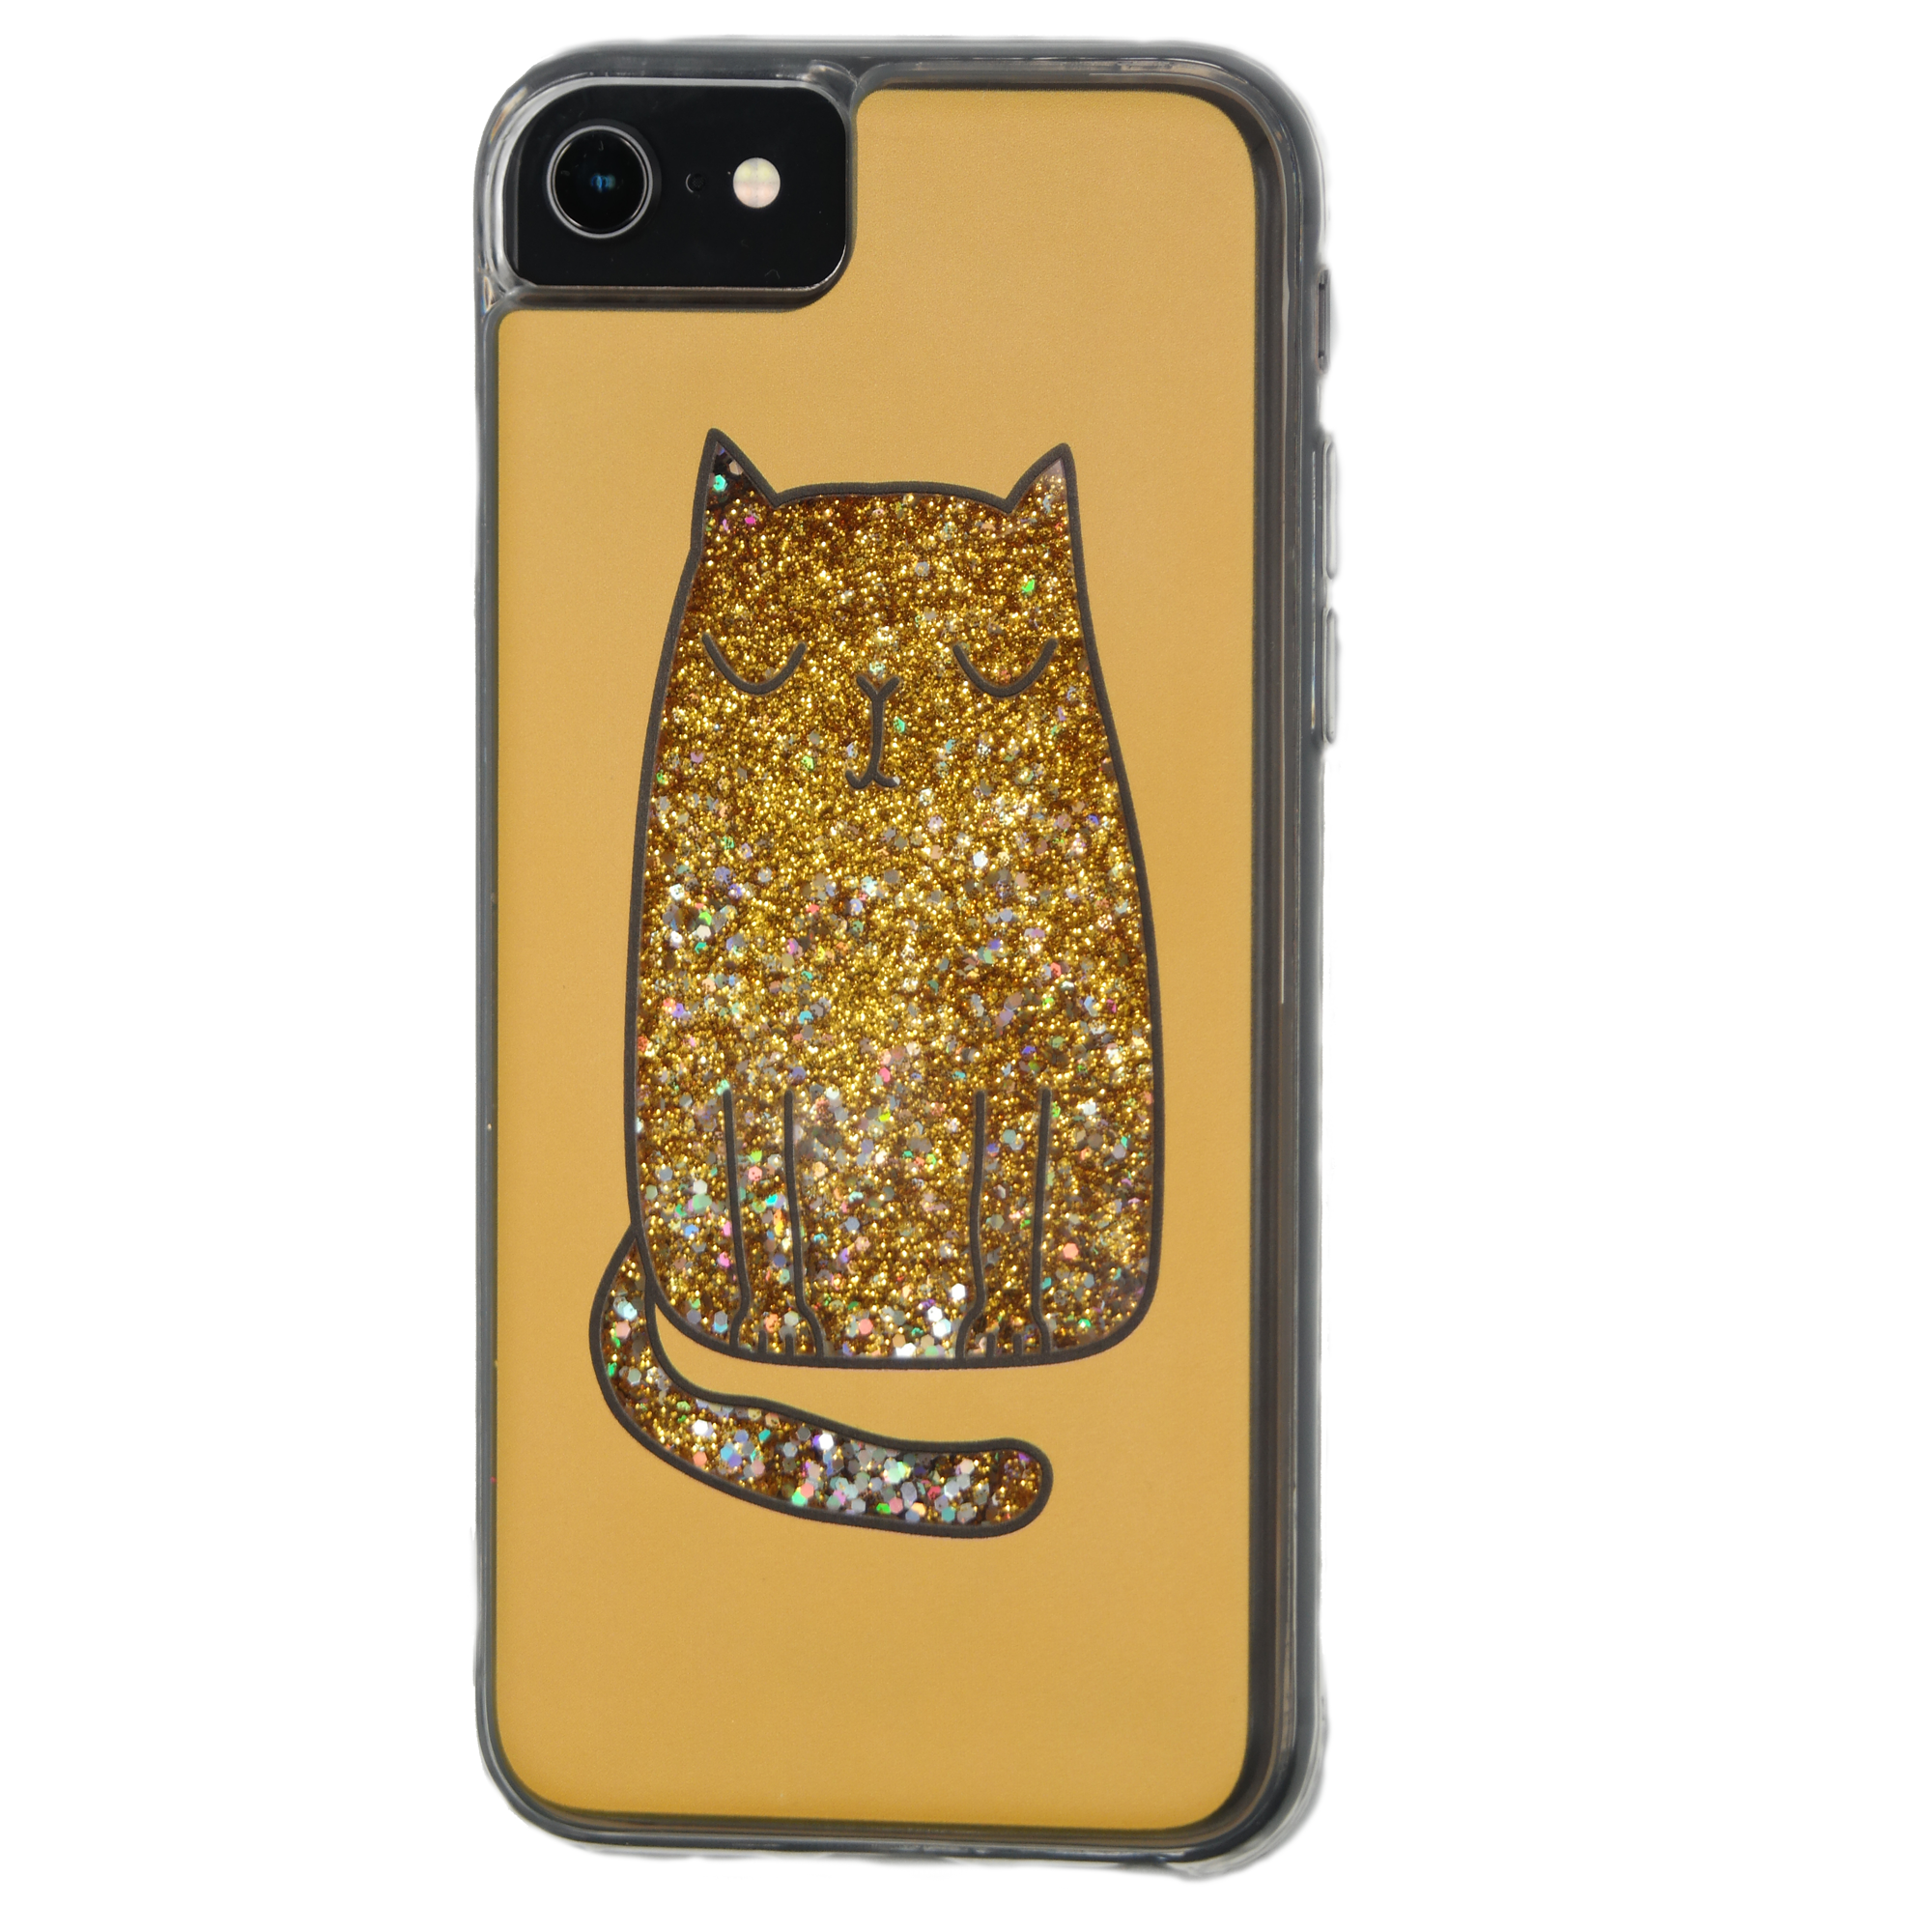 Kitties | Beautiful Glitter Protection Case for iPhone 7/8 iPhone 7/8plus iPhone X/ S9/S9 Plus